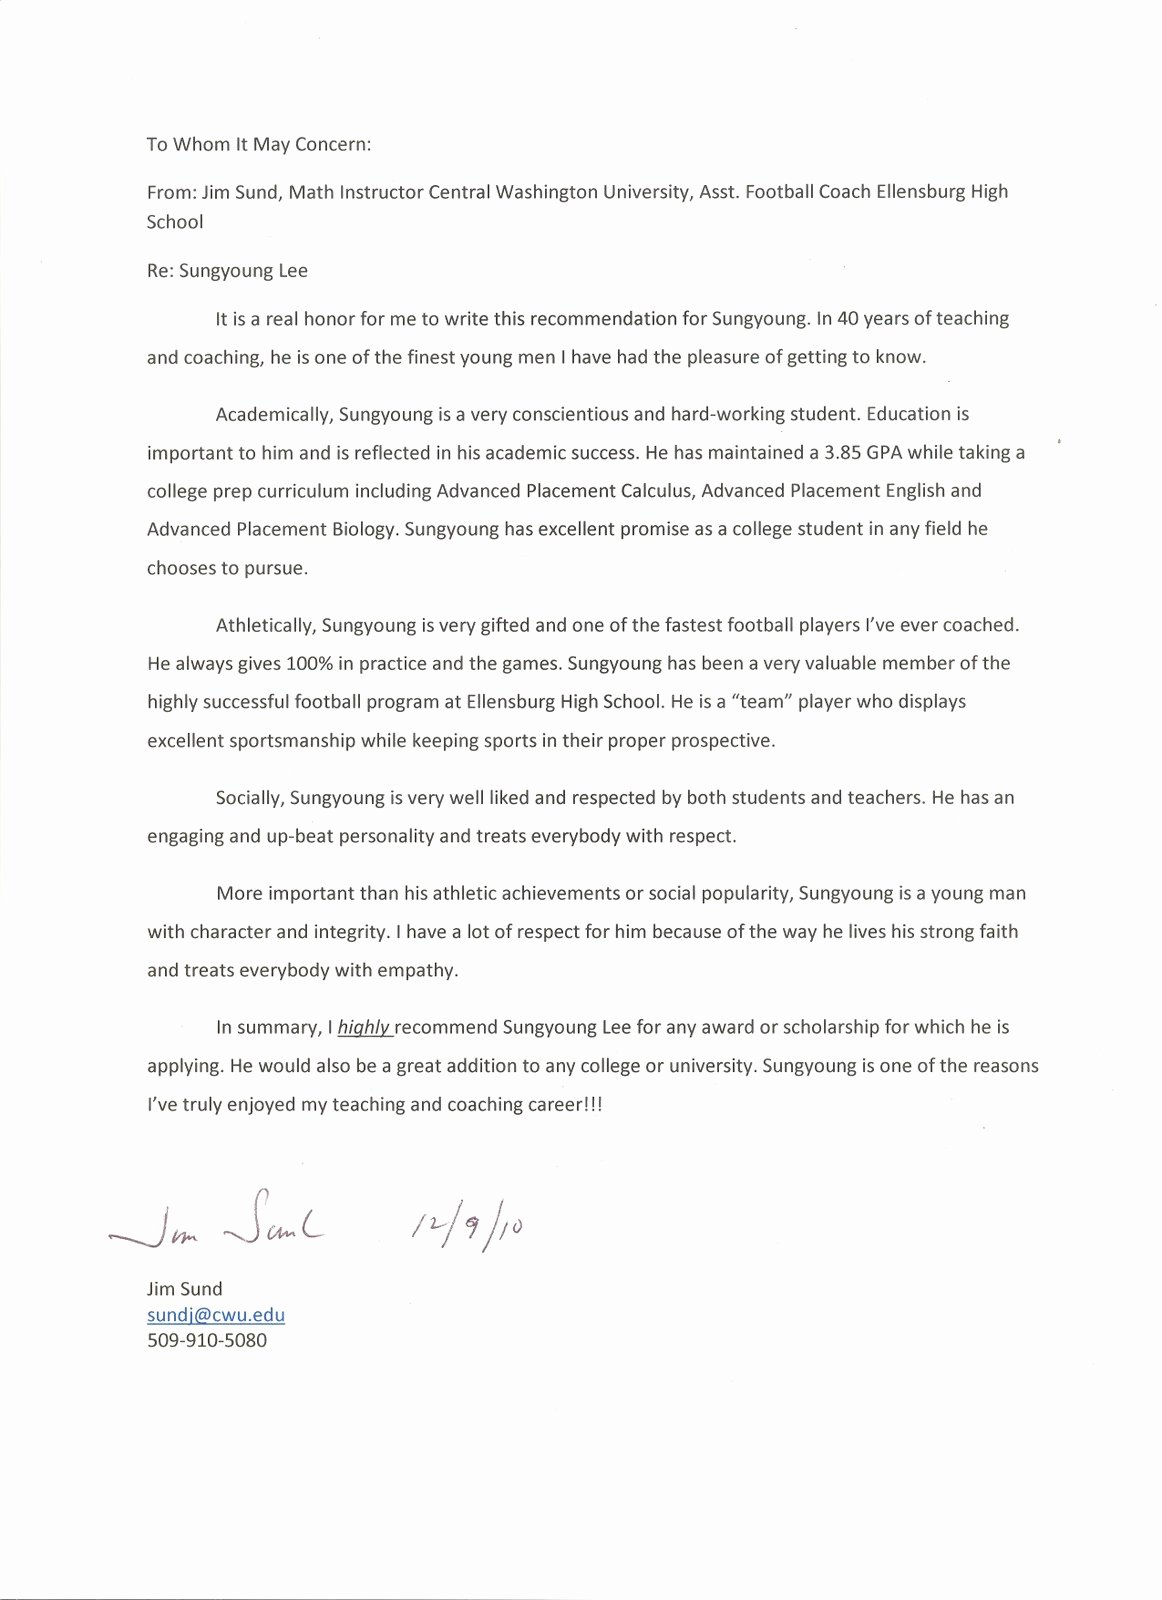 Eagle Scout Letter Of Recommendation Beautiful File Name Tumblr Mfnz7da4ve1rbklpzo1 500 Resolution